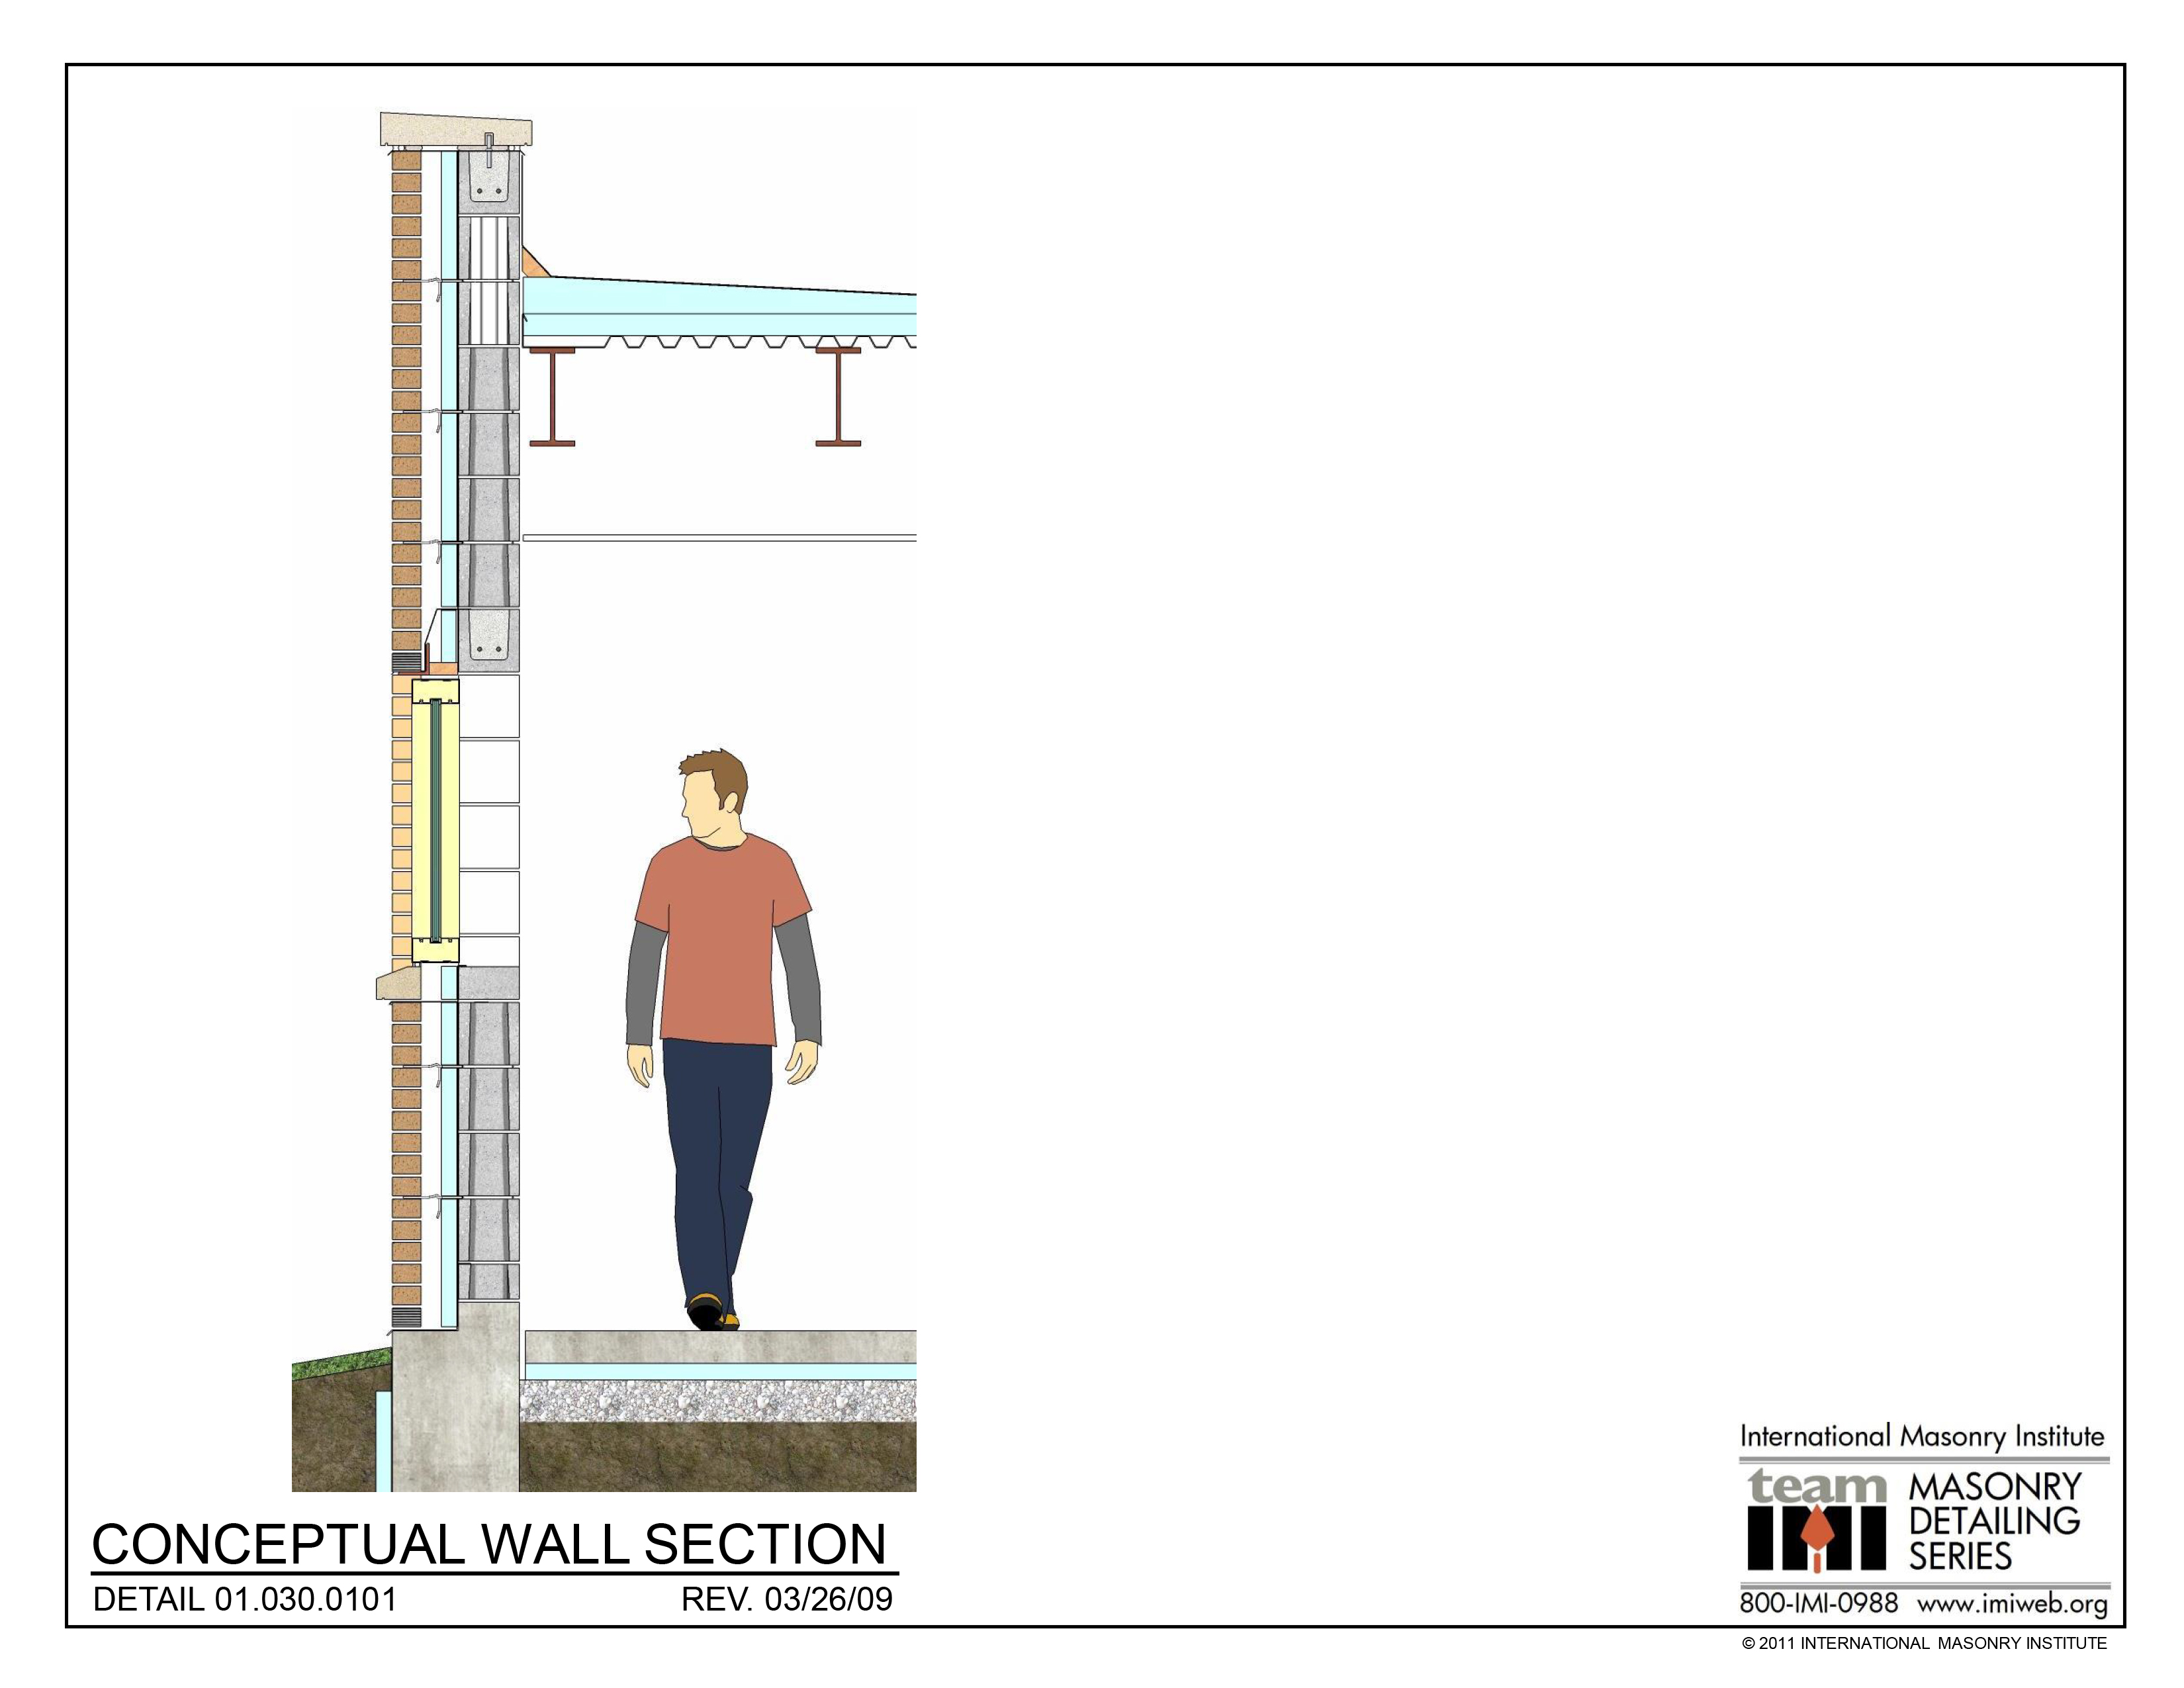 01 030 0101 Conceptual Wall Section